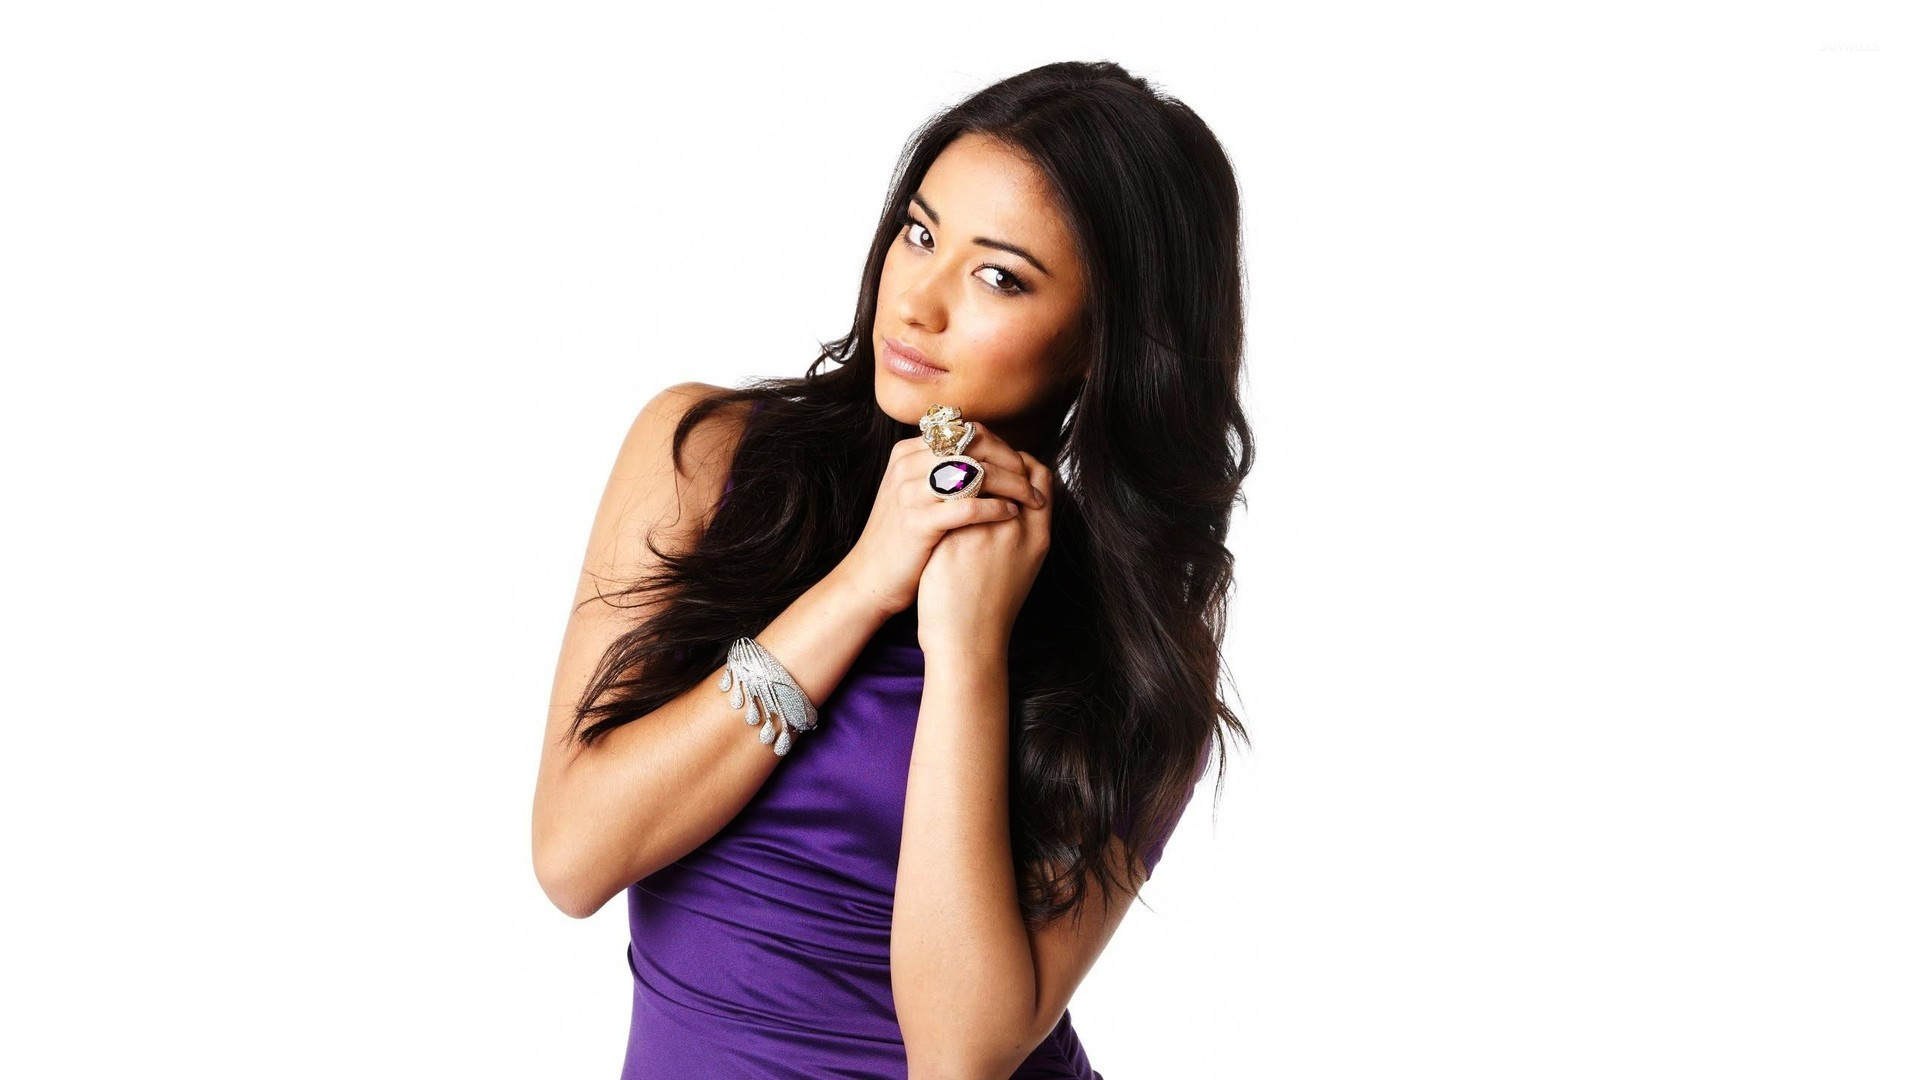 shay mitchell 8 wallpaper celebrity wallpapers 23316